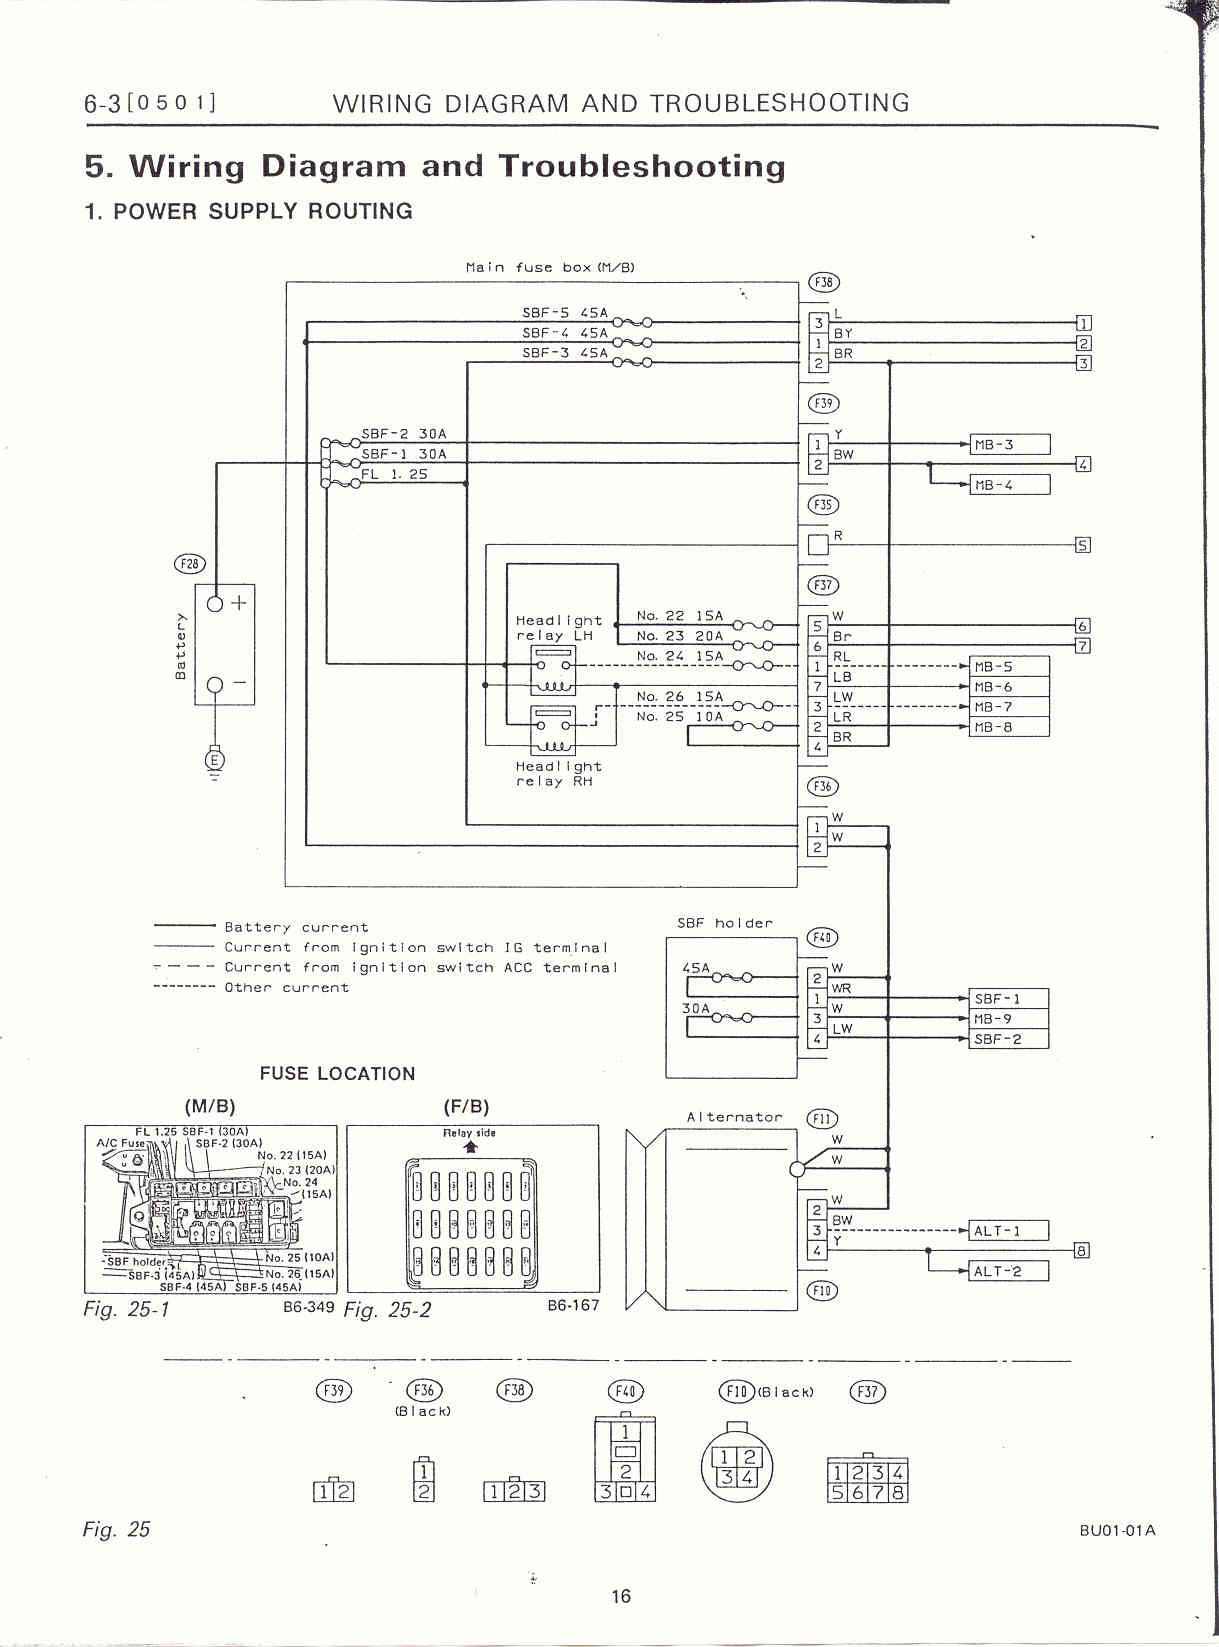 hight resolution of 1991 subaru wiring diagram wiring diagram todays subaru impreza engine diagram 1991 subaru legacy wiring diagram